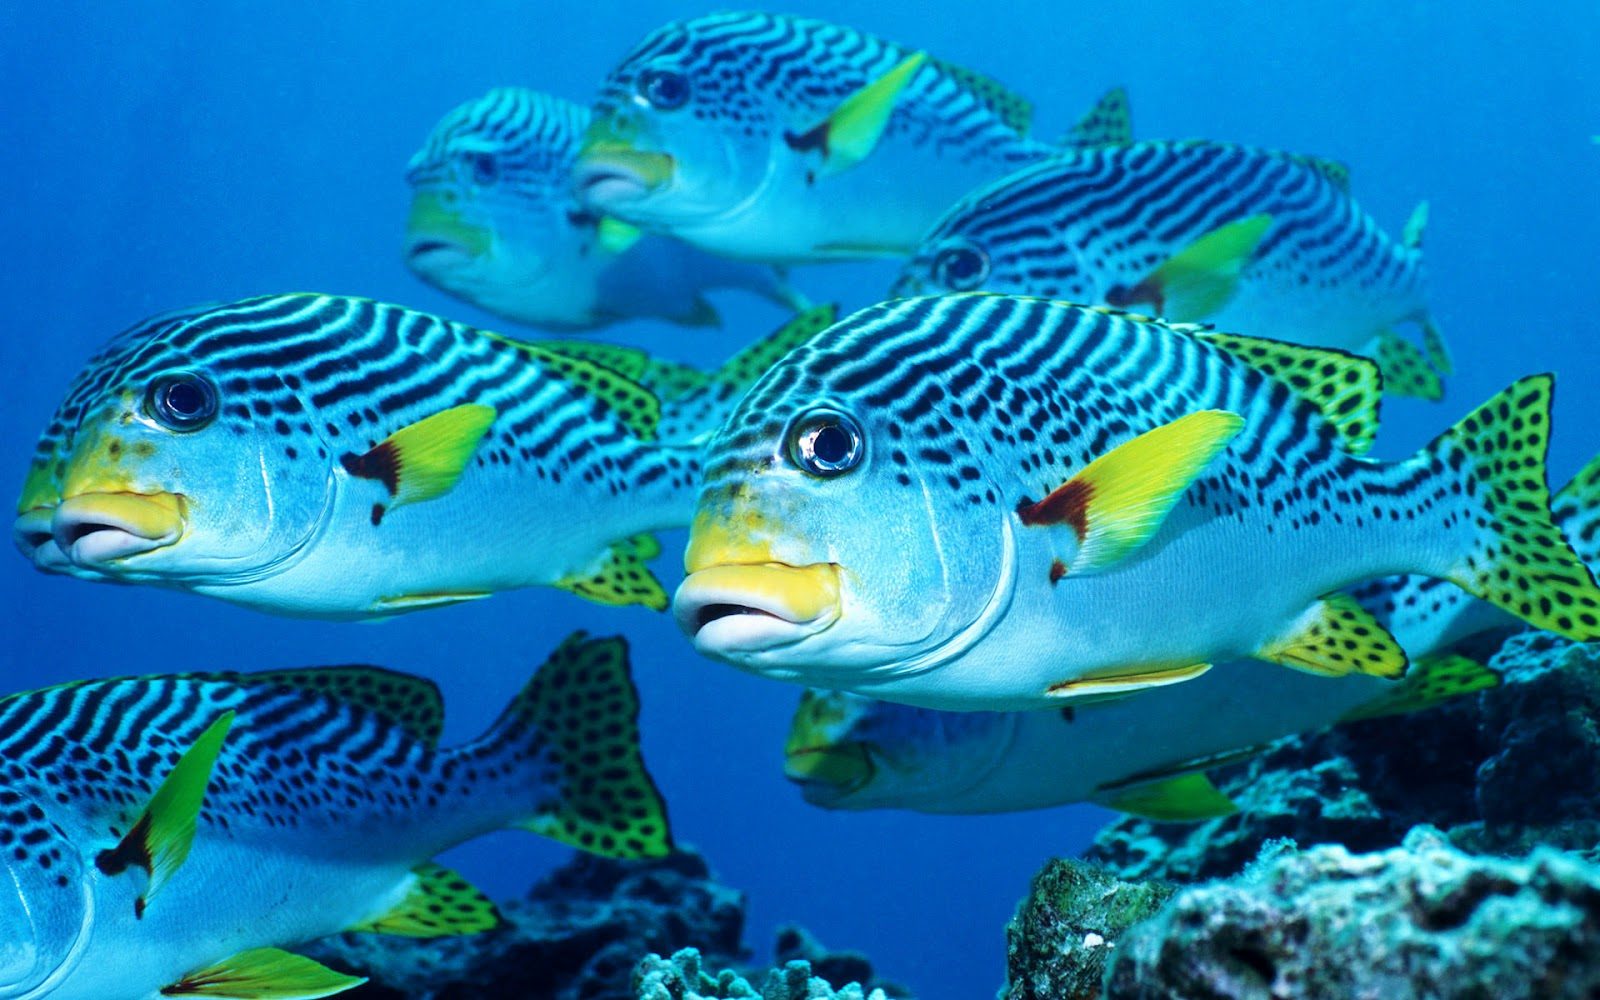 Pictures of fish ocean wallpapers chapter 2 hd animal for Wallpaper fish in water